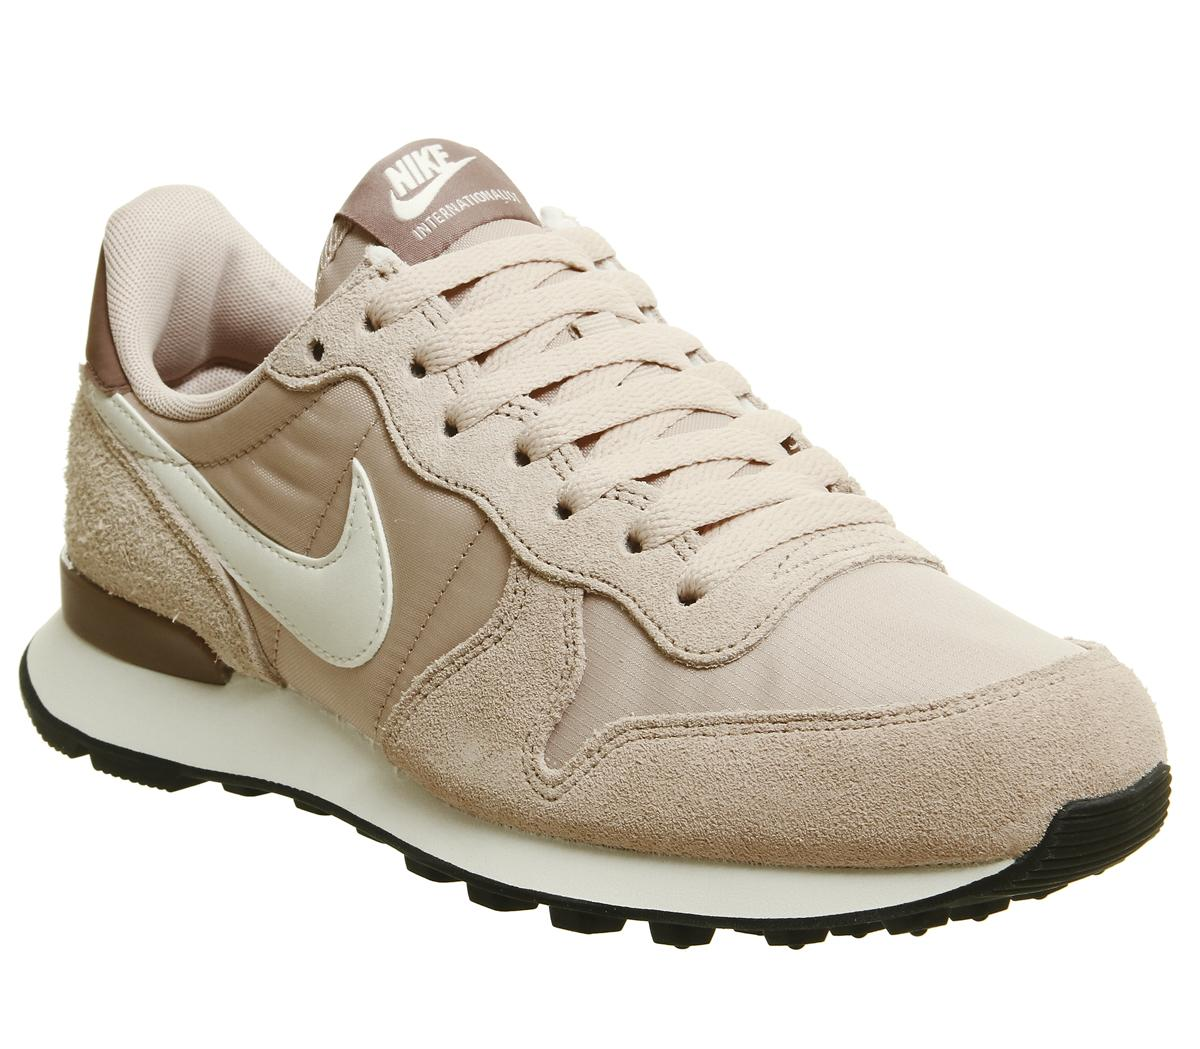 Invertir pandilla Cuaderno  Nike Nike Internationalist Trainers Particle Beige Summit White Smokey -  Hers trainers